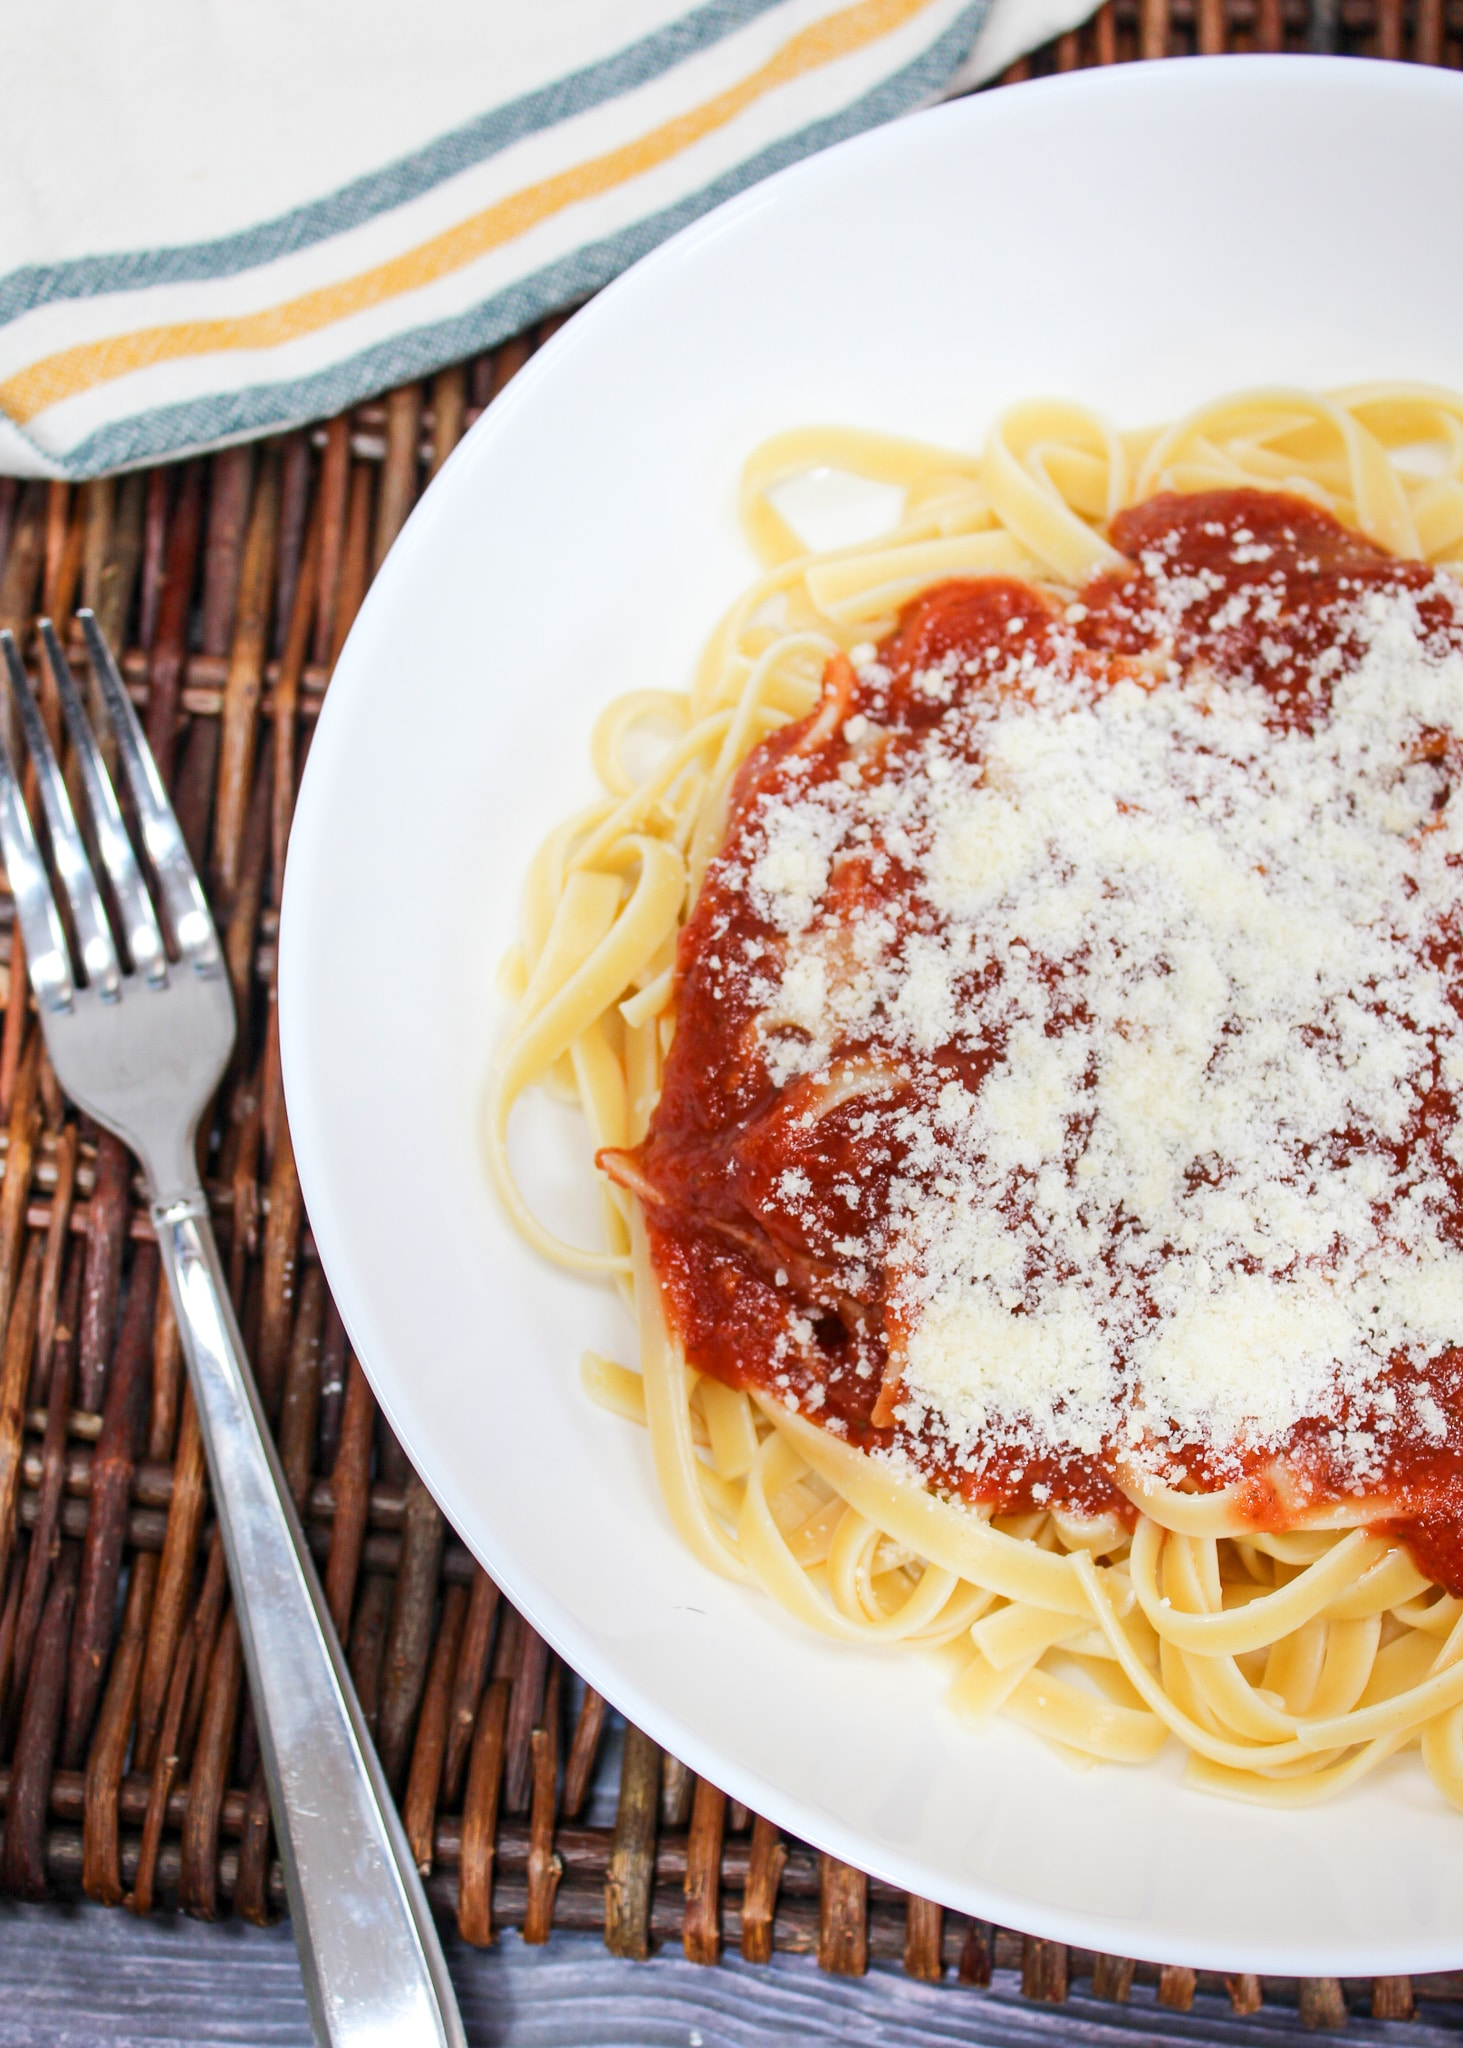 pasta sauce spooned over cooked pasta with parmesan cheese